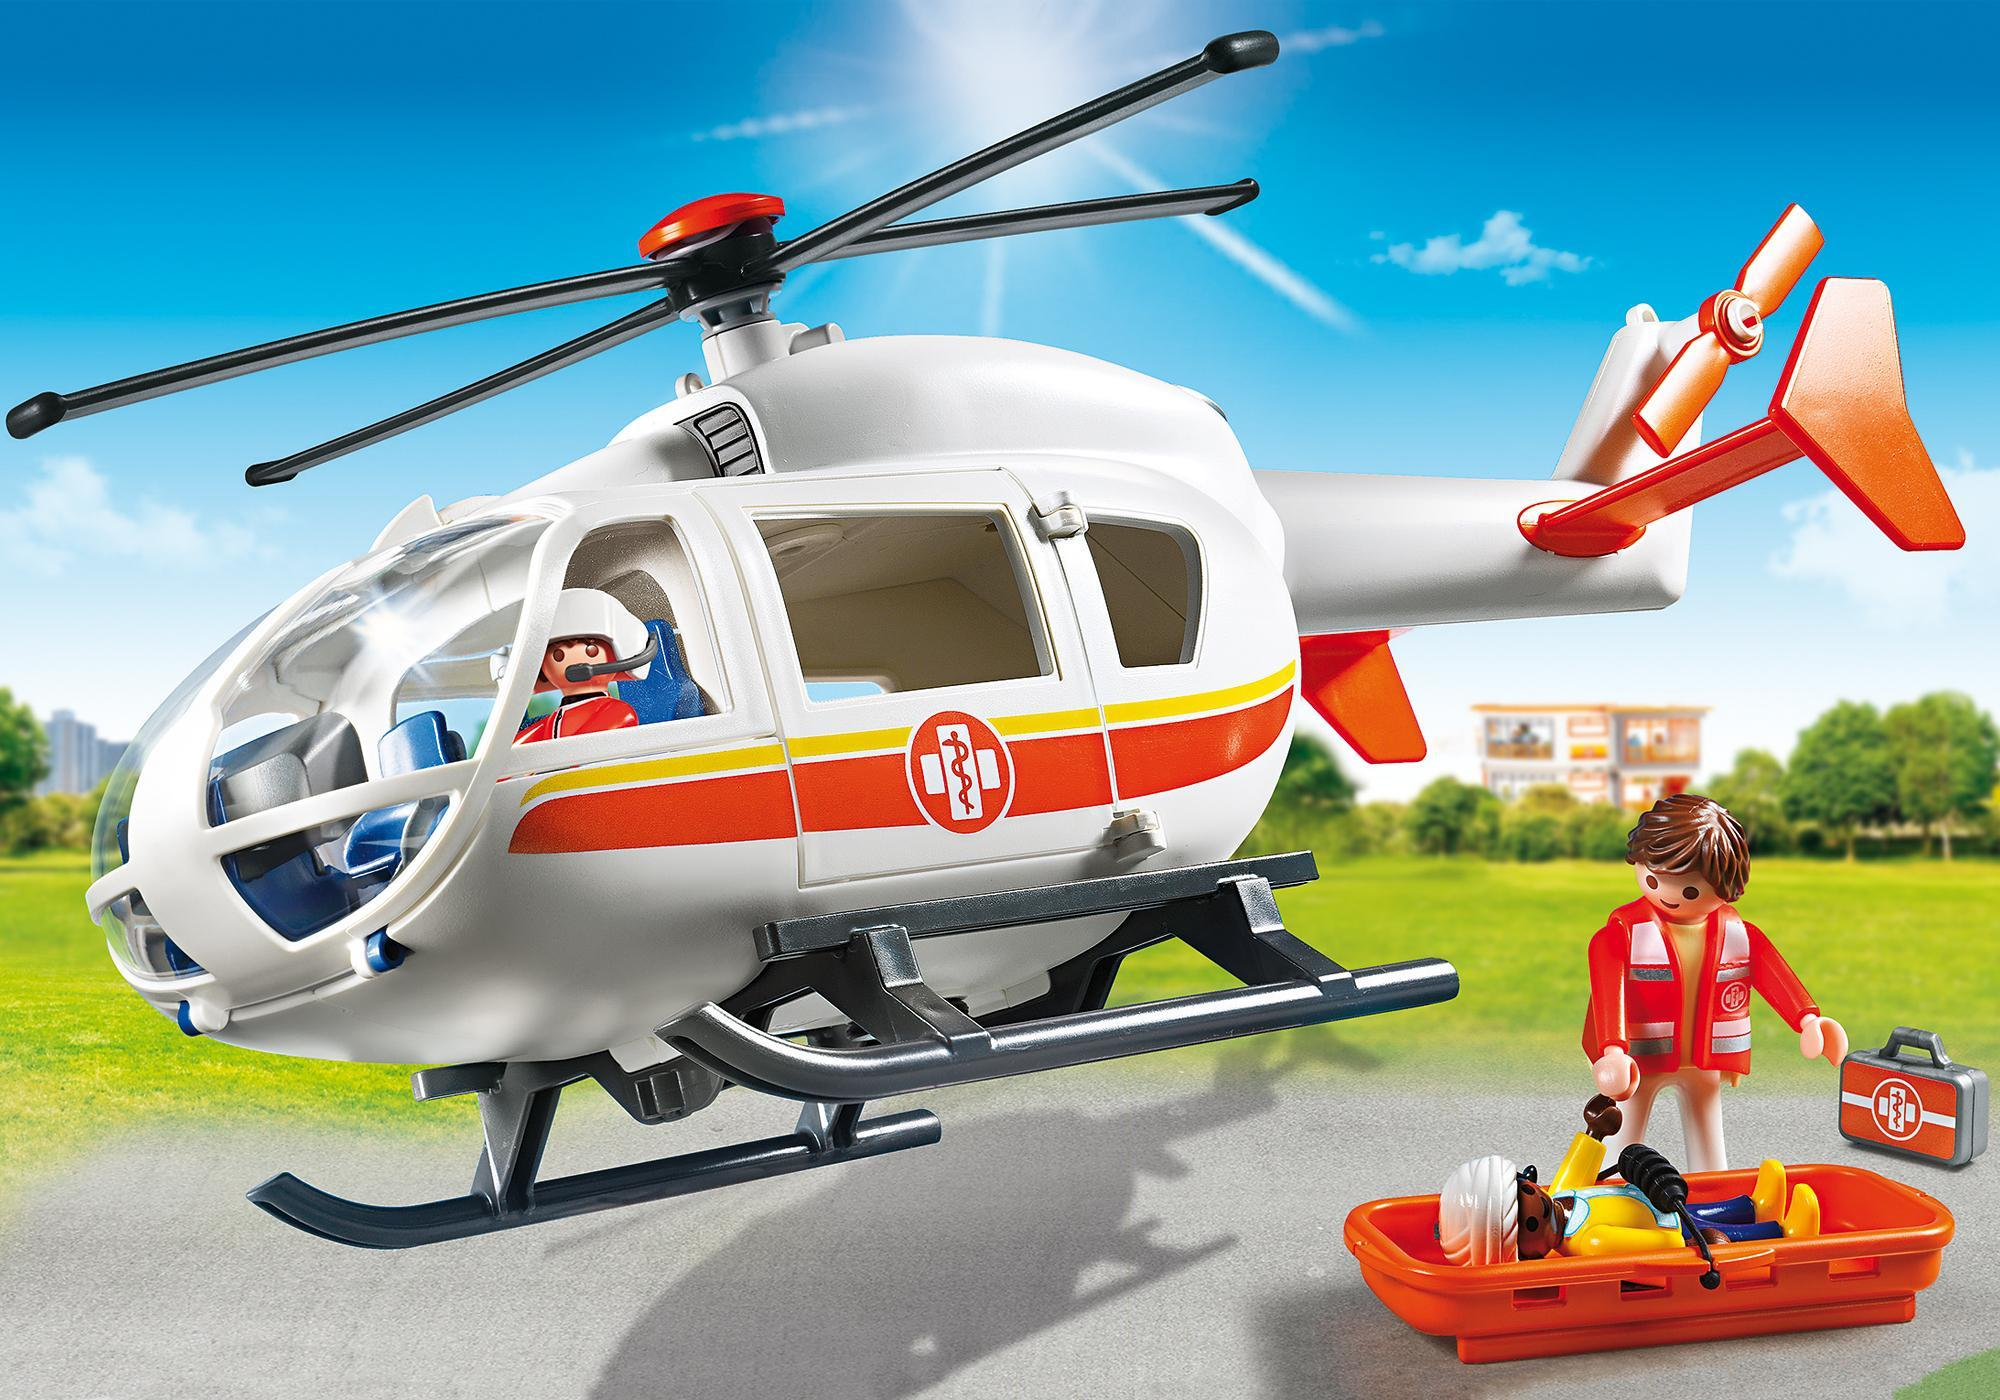 http://media.playmobil.com/i/playmobil/6686_product_detail/Emergency Medical Helicopter